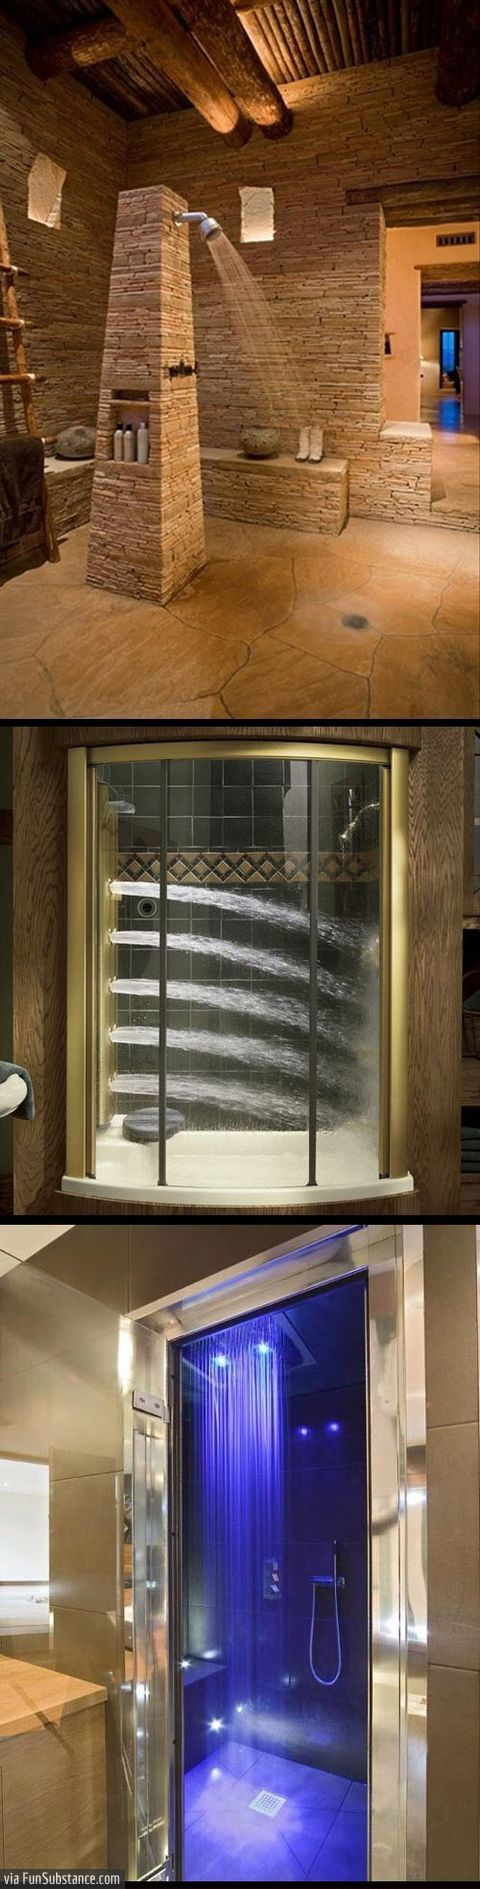 Inspirational Bathroom Designs / Ideas The greatest showers in the world - FunSubstance.com